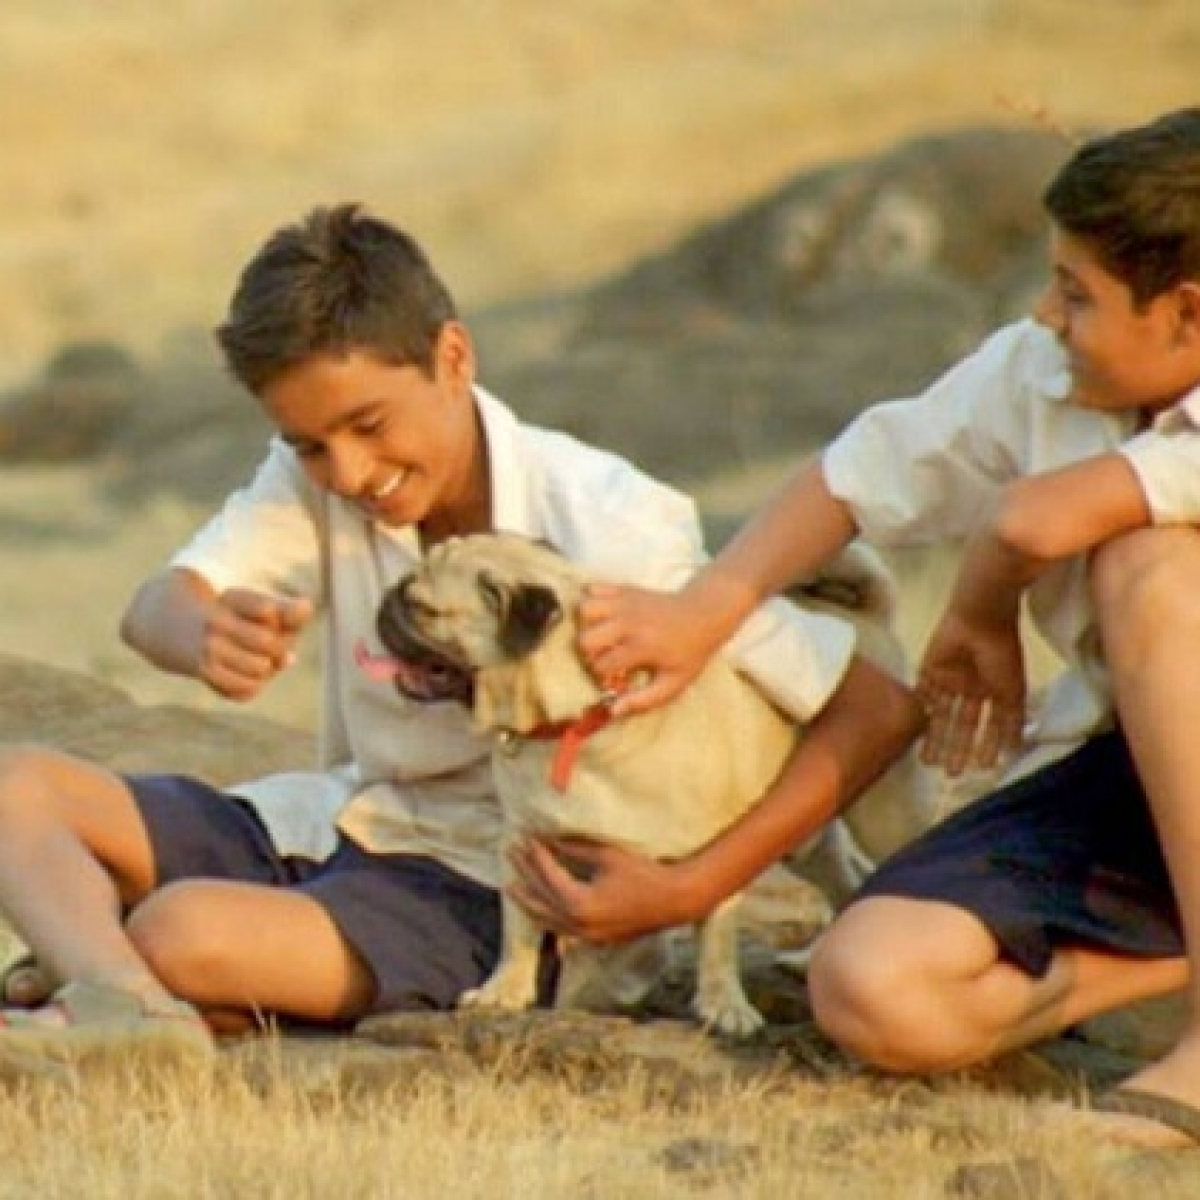 Not many films are made for children in India: Marathi filmmaker Vinod Sam Peter talks about his movie Puglya